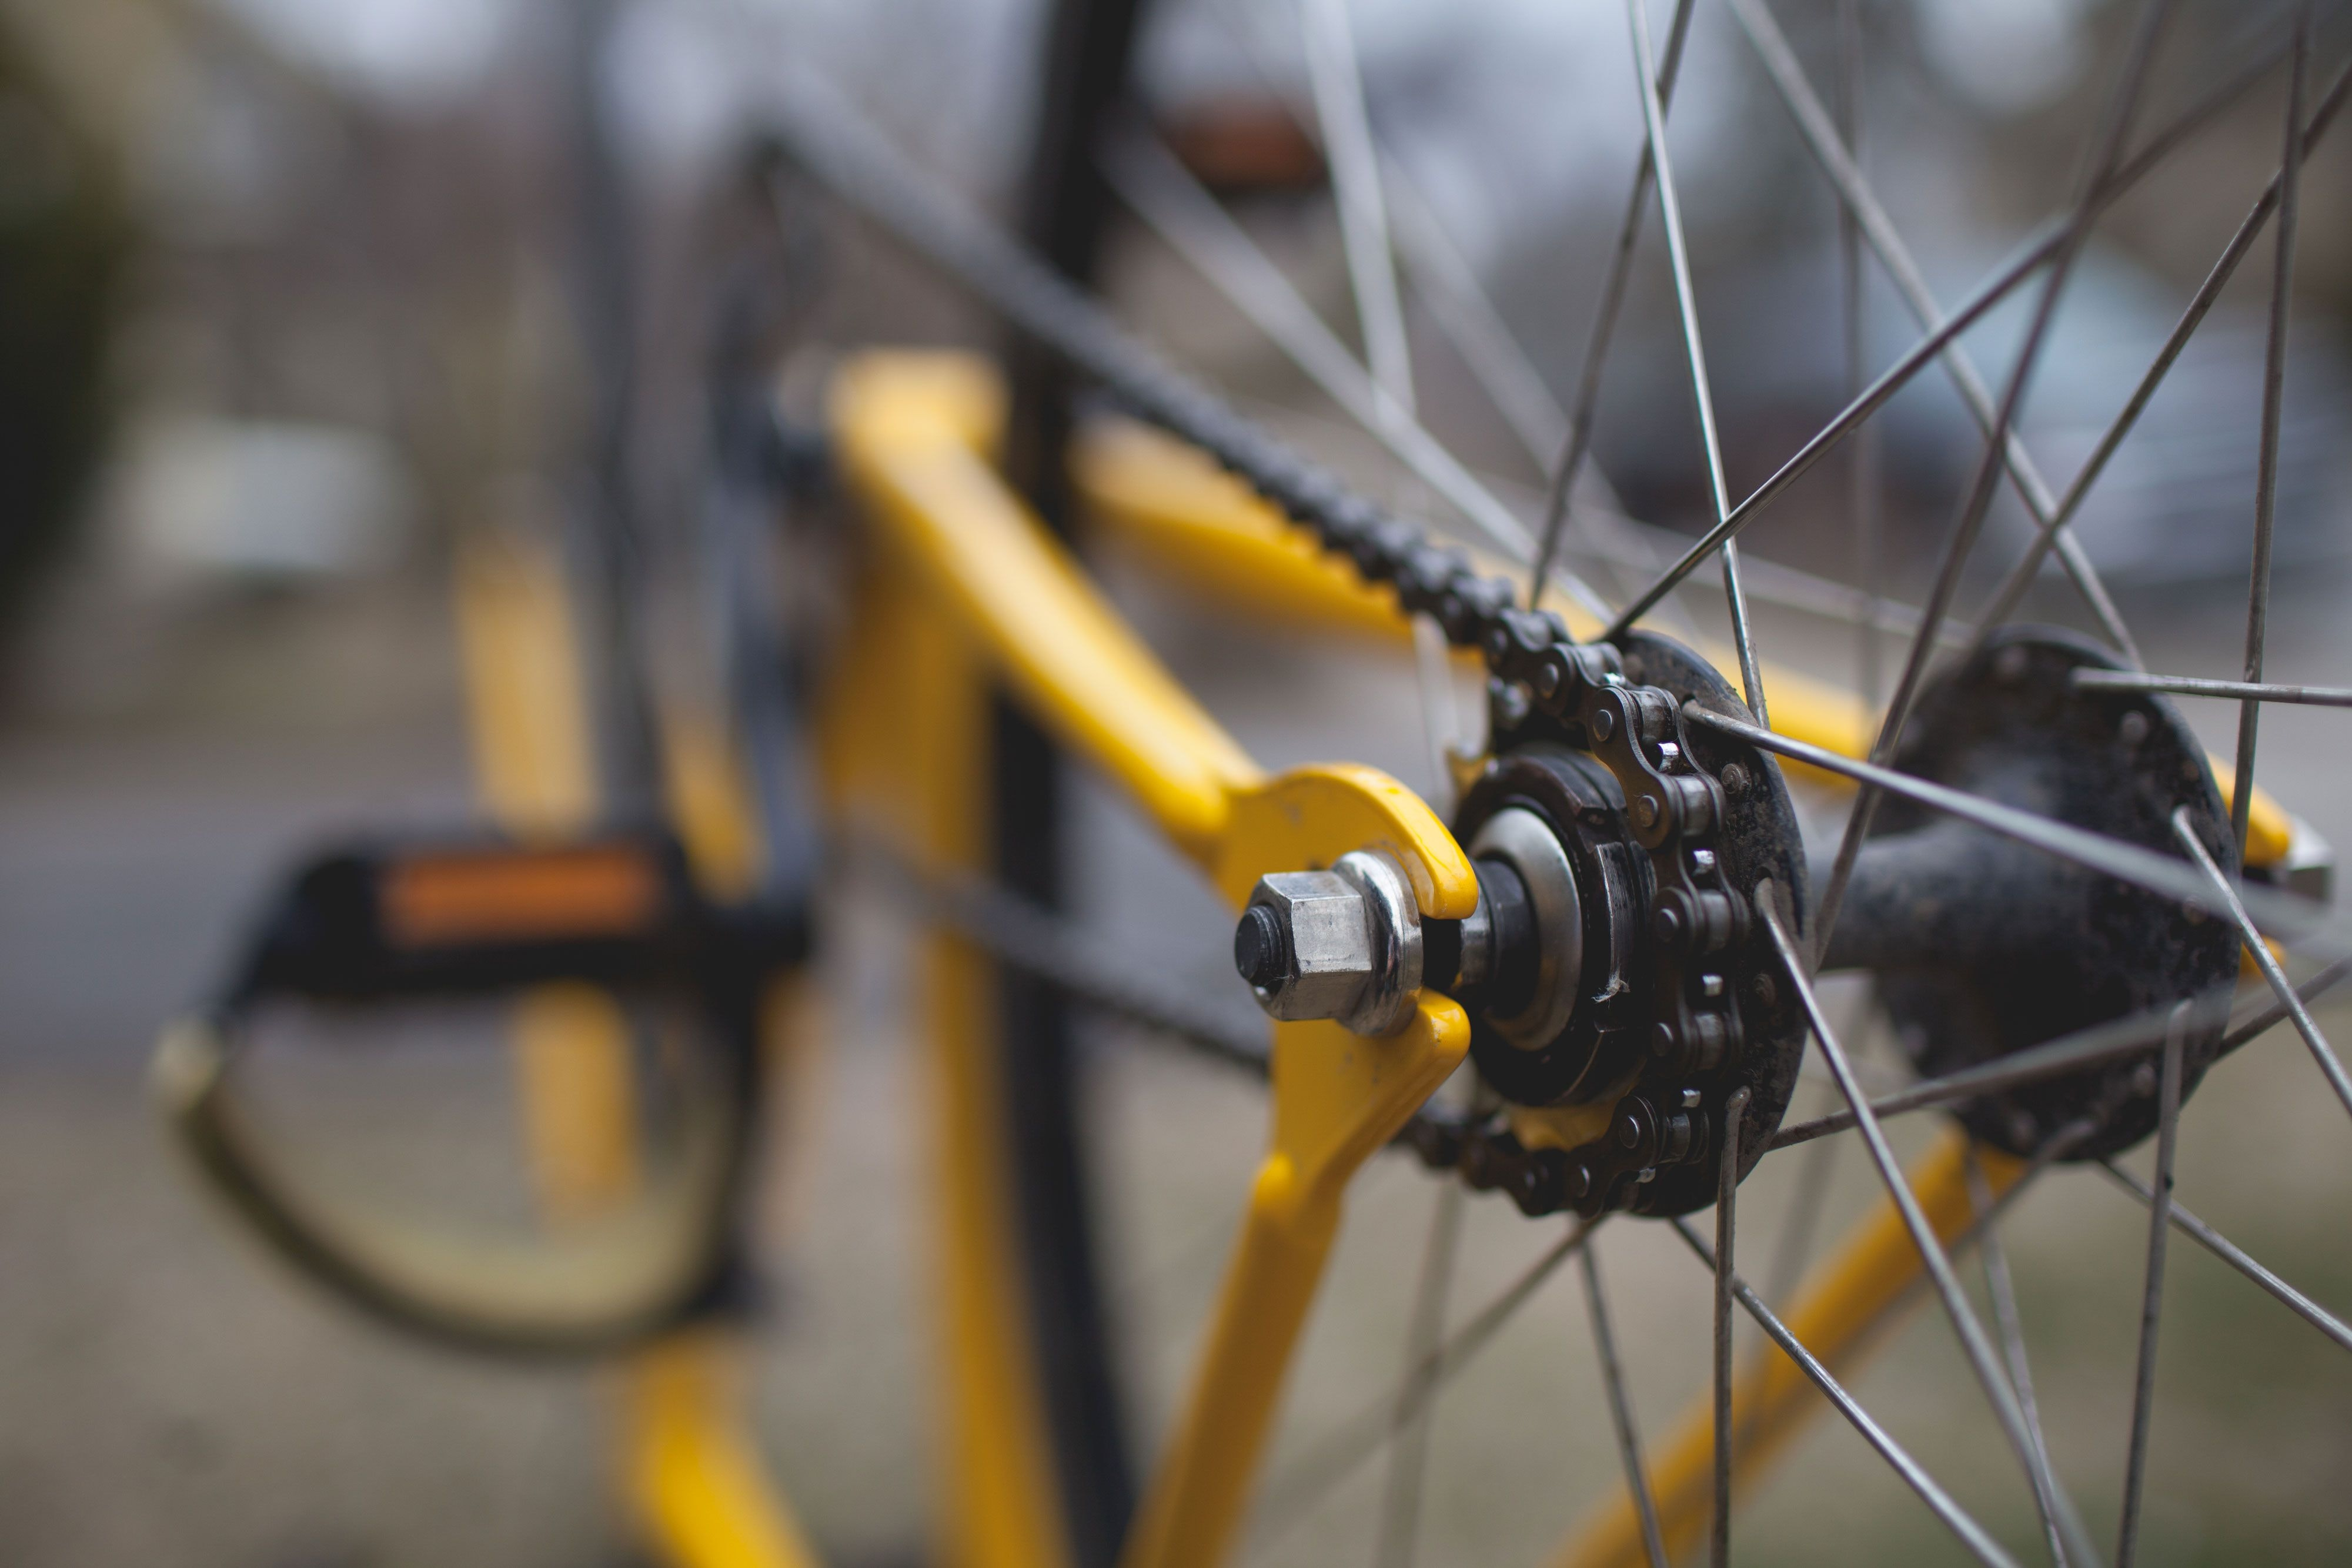 A close up of a yellow bike, emphasizing its spokes, gears, and pedals